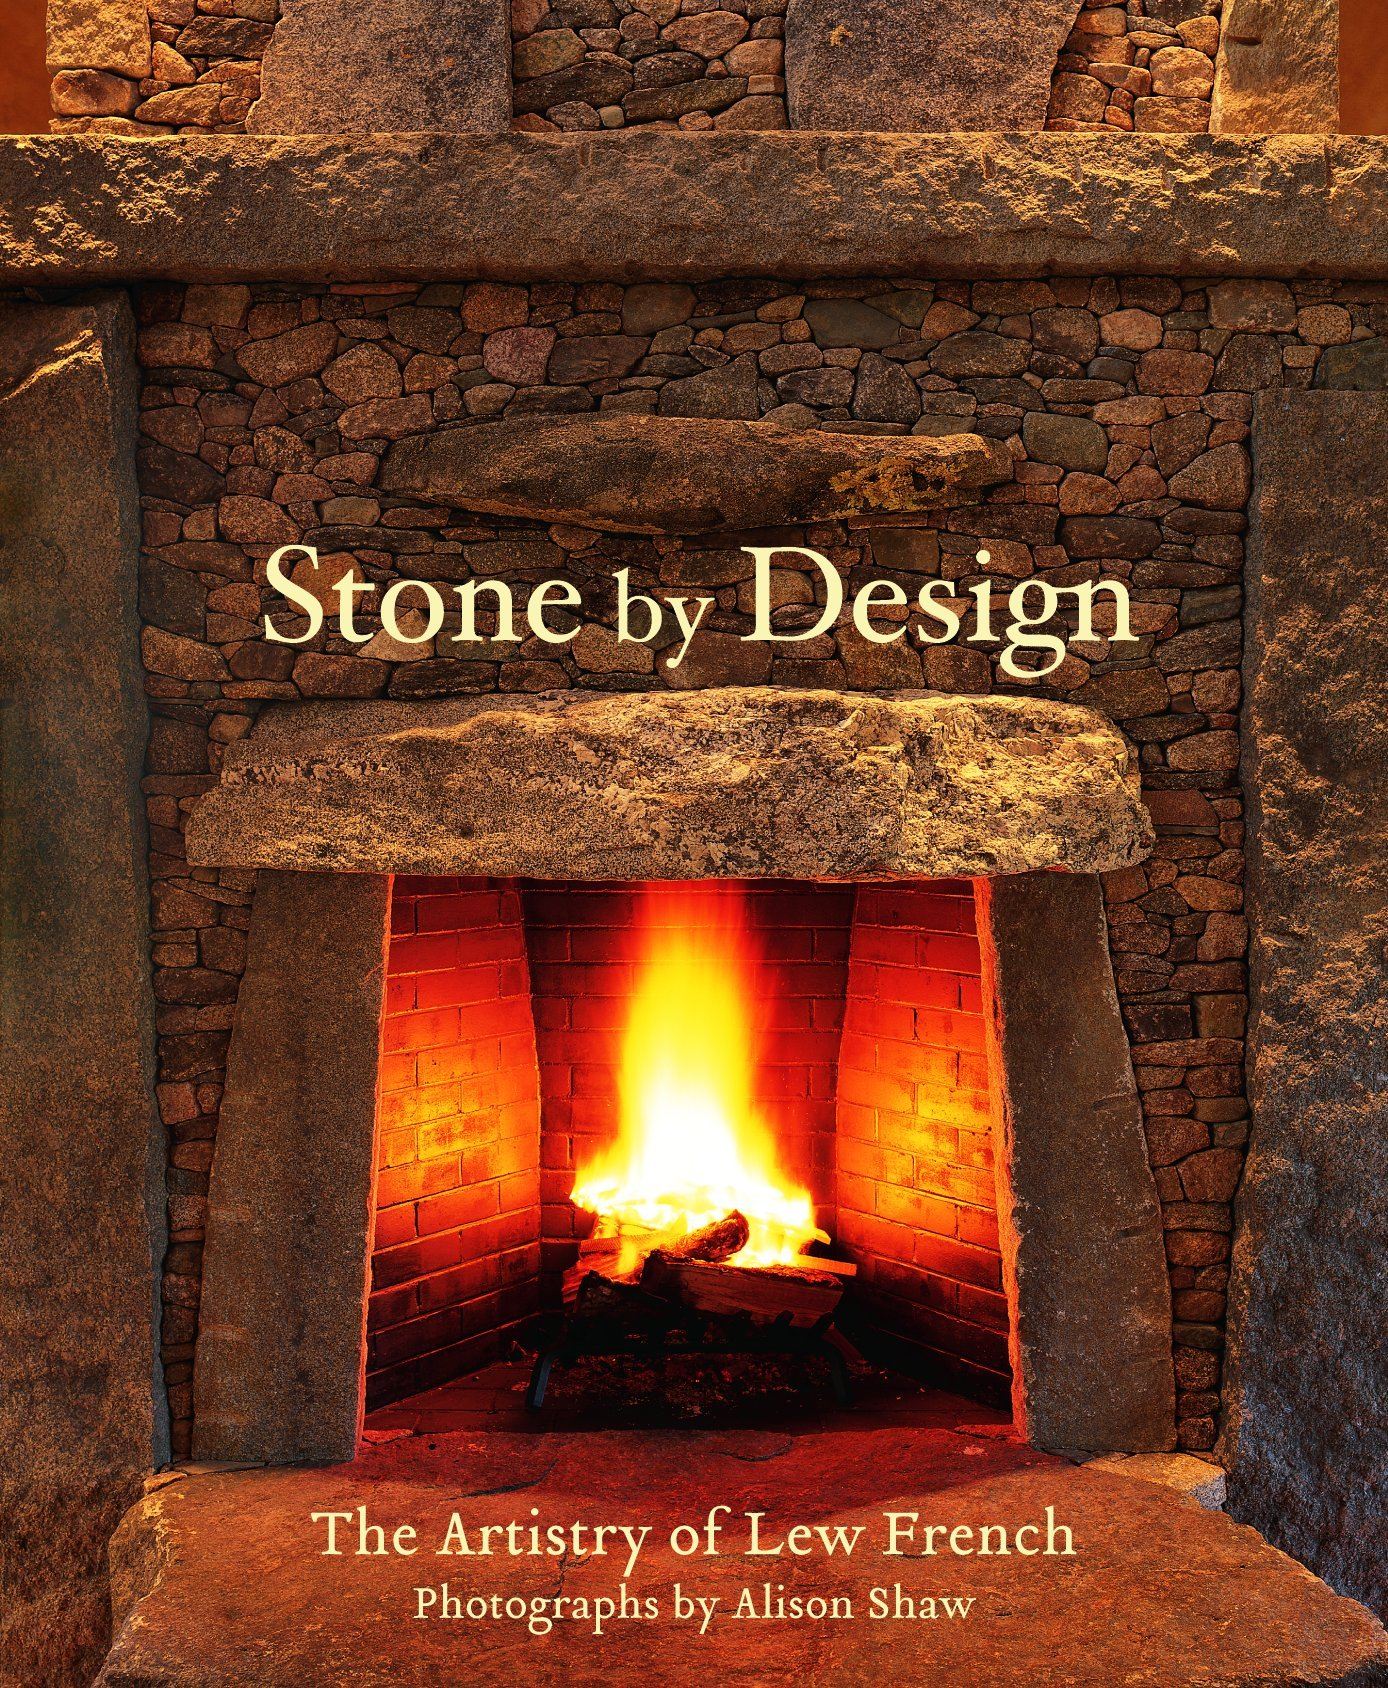 stone by design the artistry of lew french lew french alison